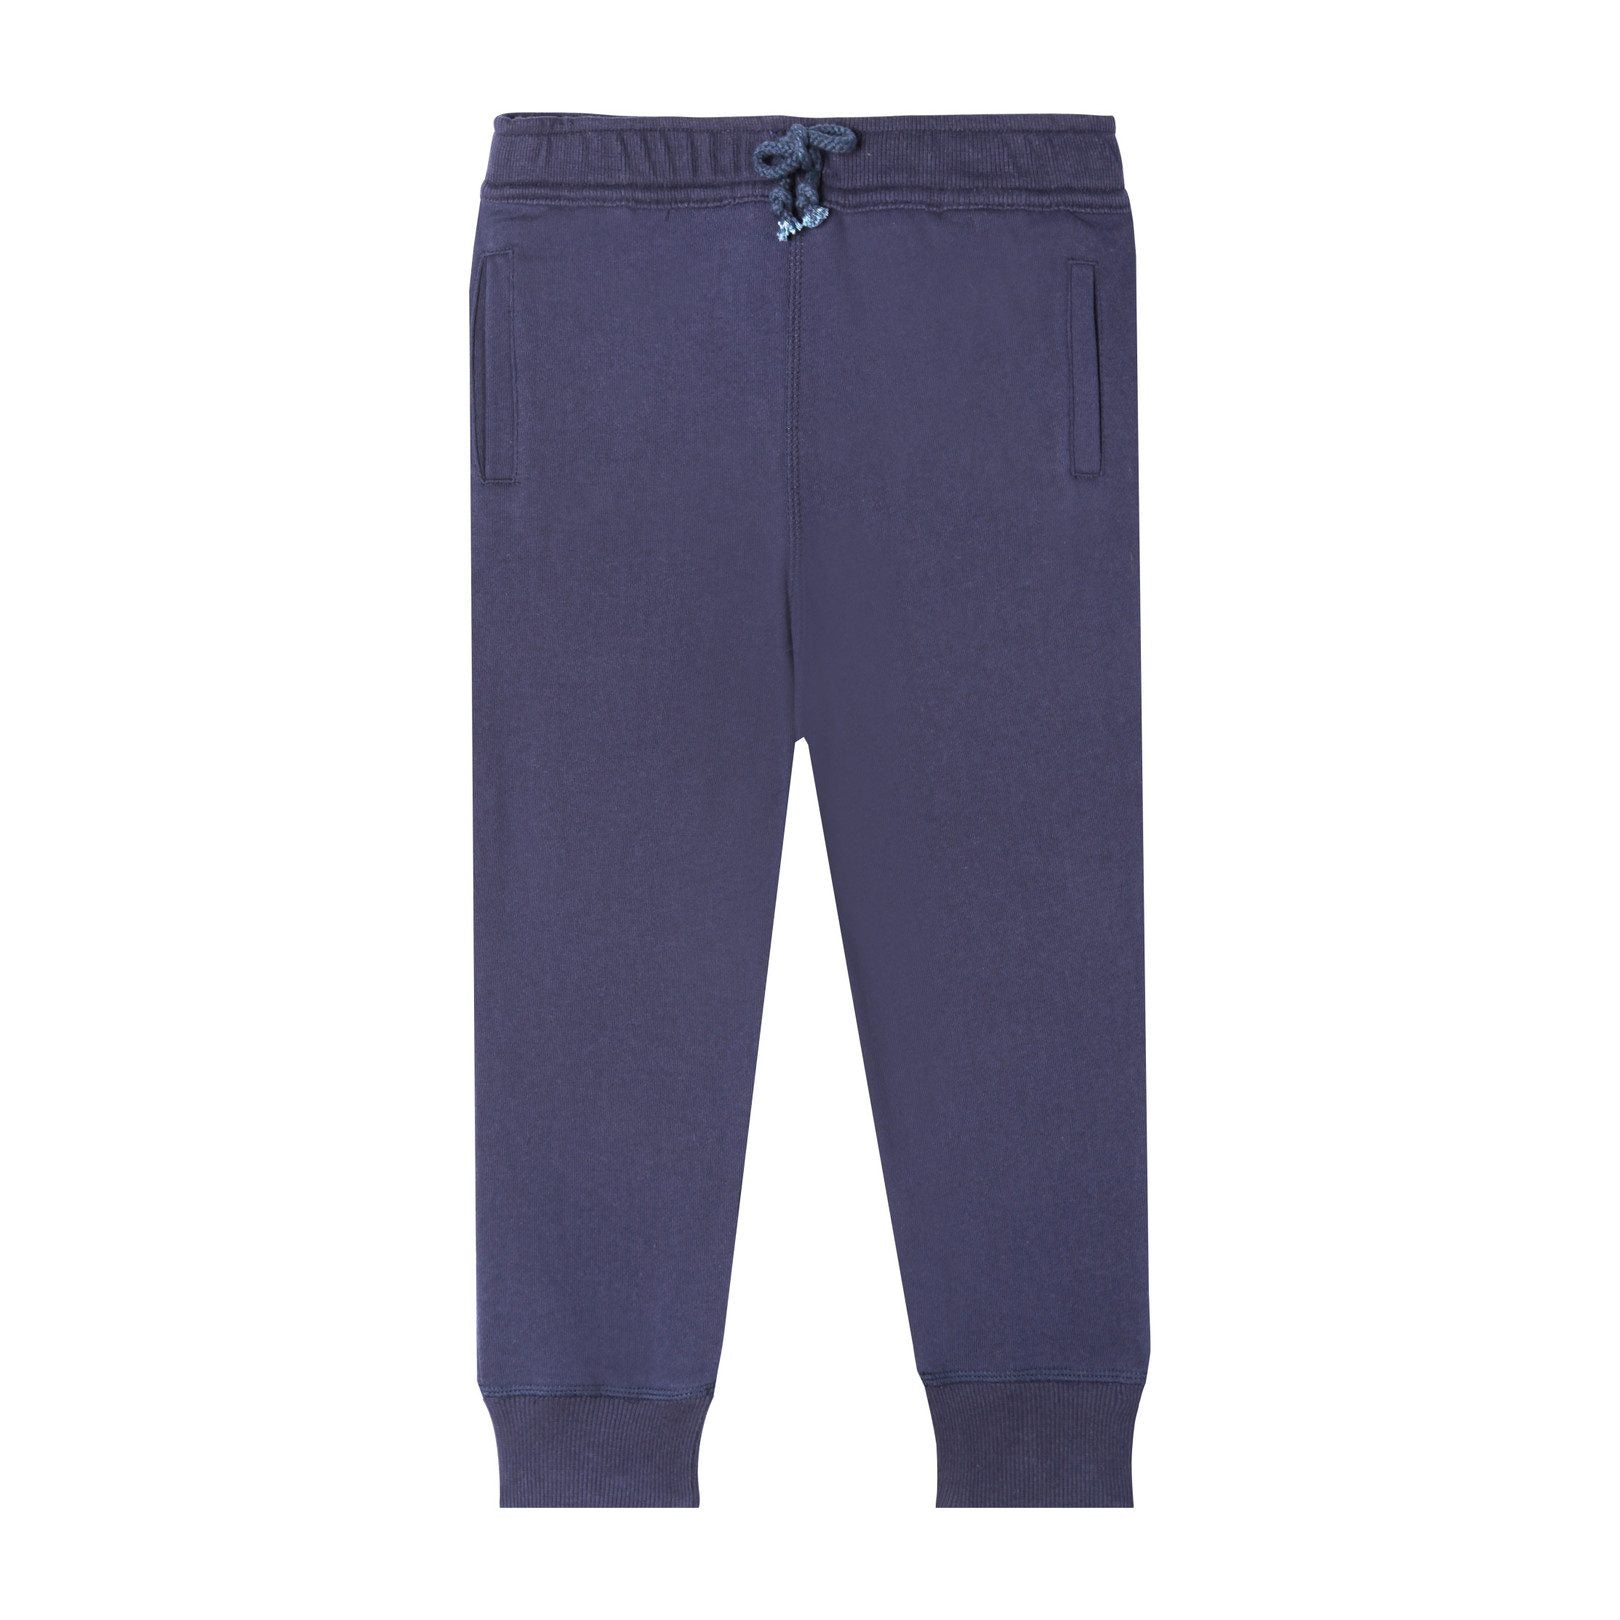 Art & Eden Organic Cotton Mercer Jogger - Navy & Black Available